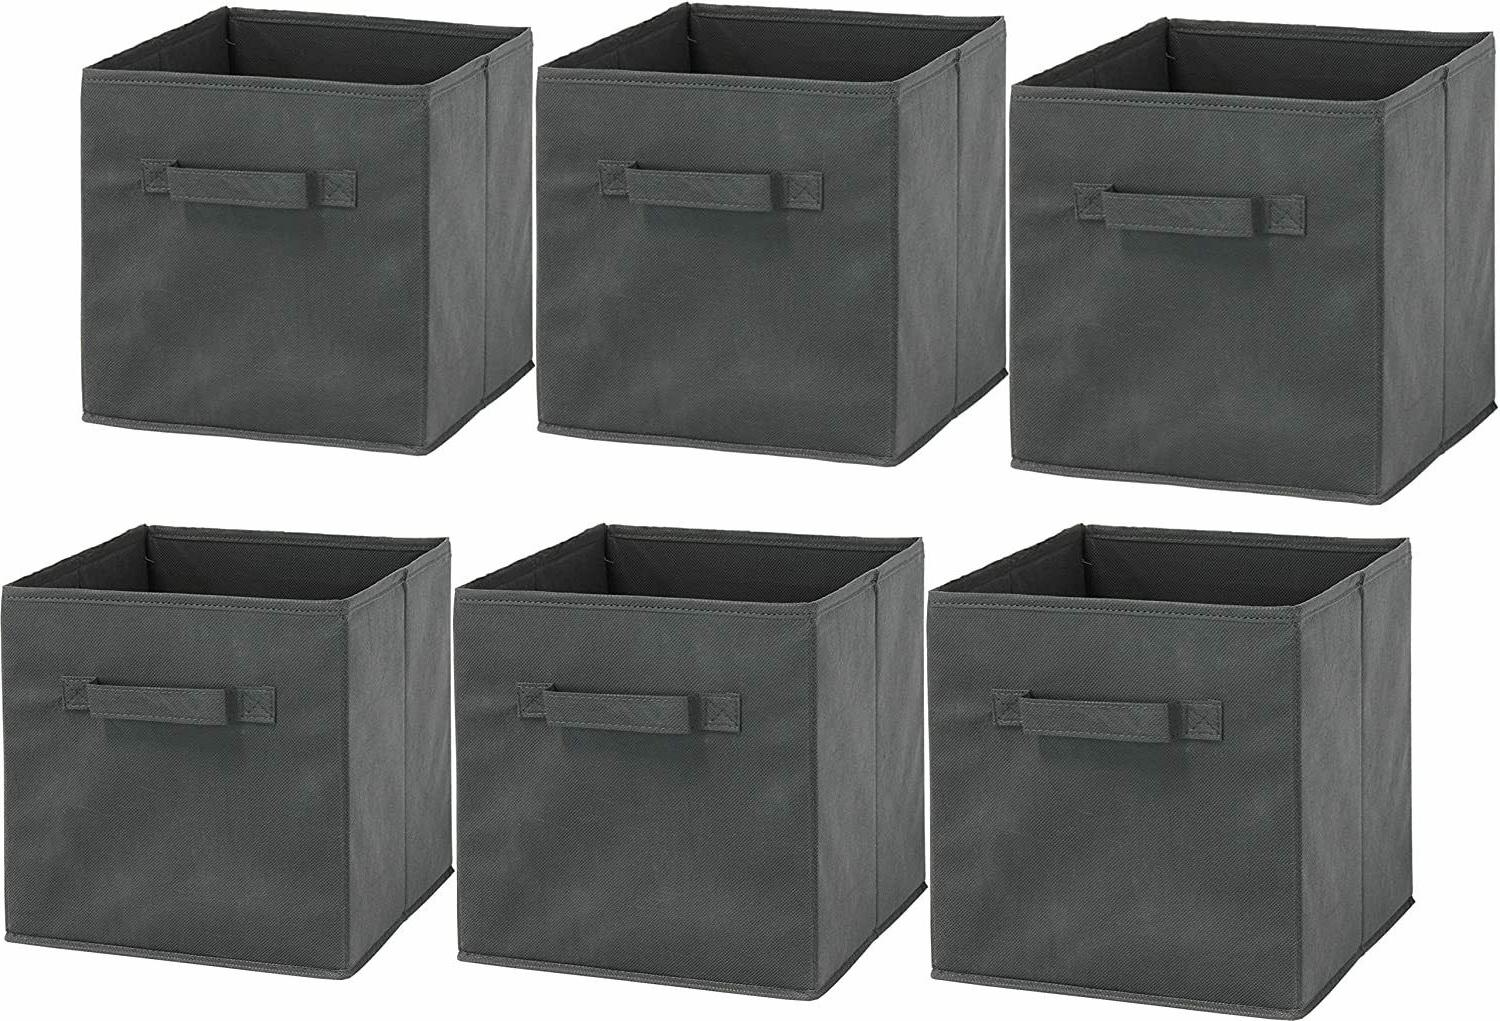 6 Pack - SimpleHouseware Foldable